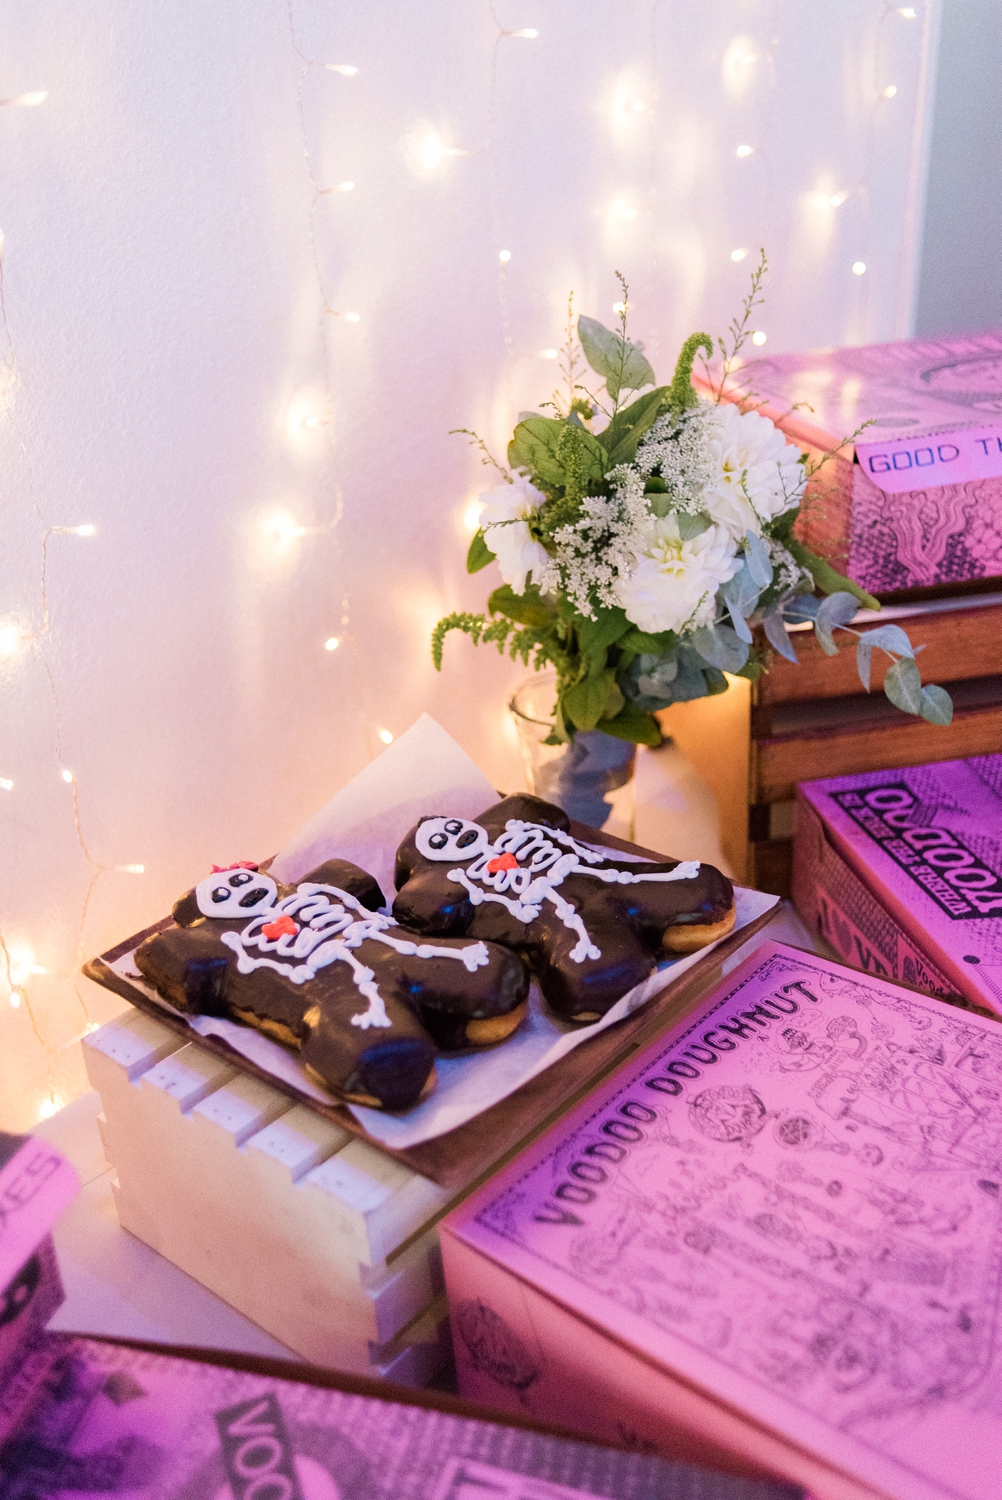 voo-doo-doughnut-wedding-urban-studio-portland-shelley-marie-photo-427_cr.jpg